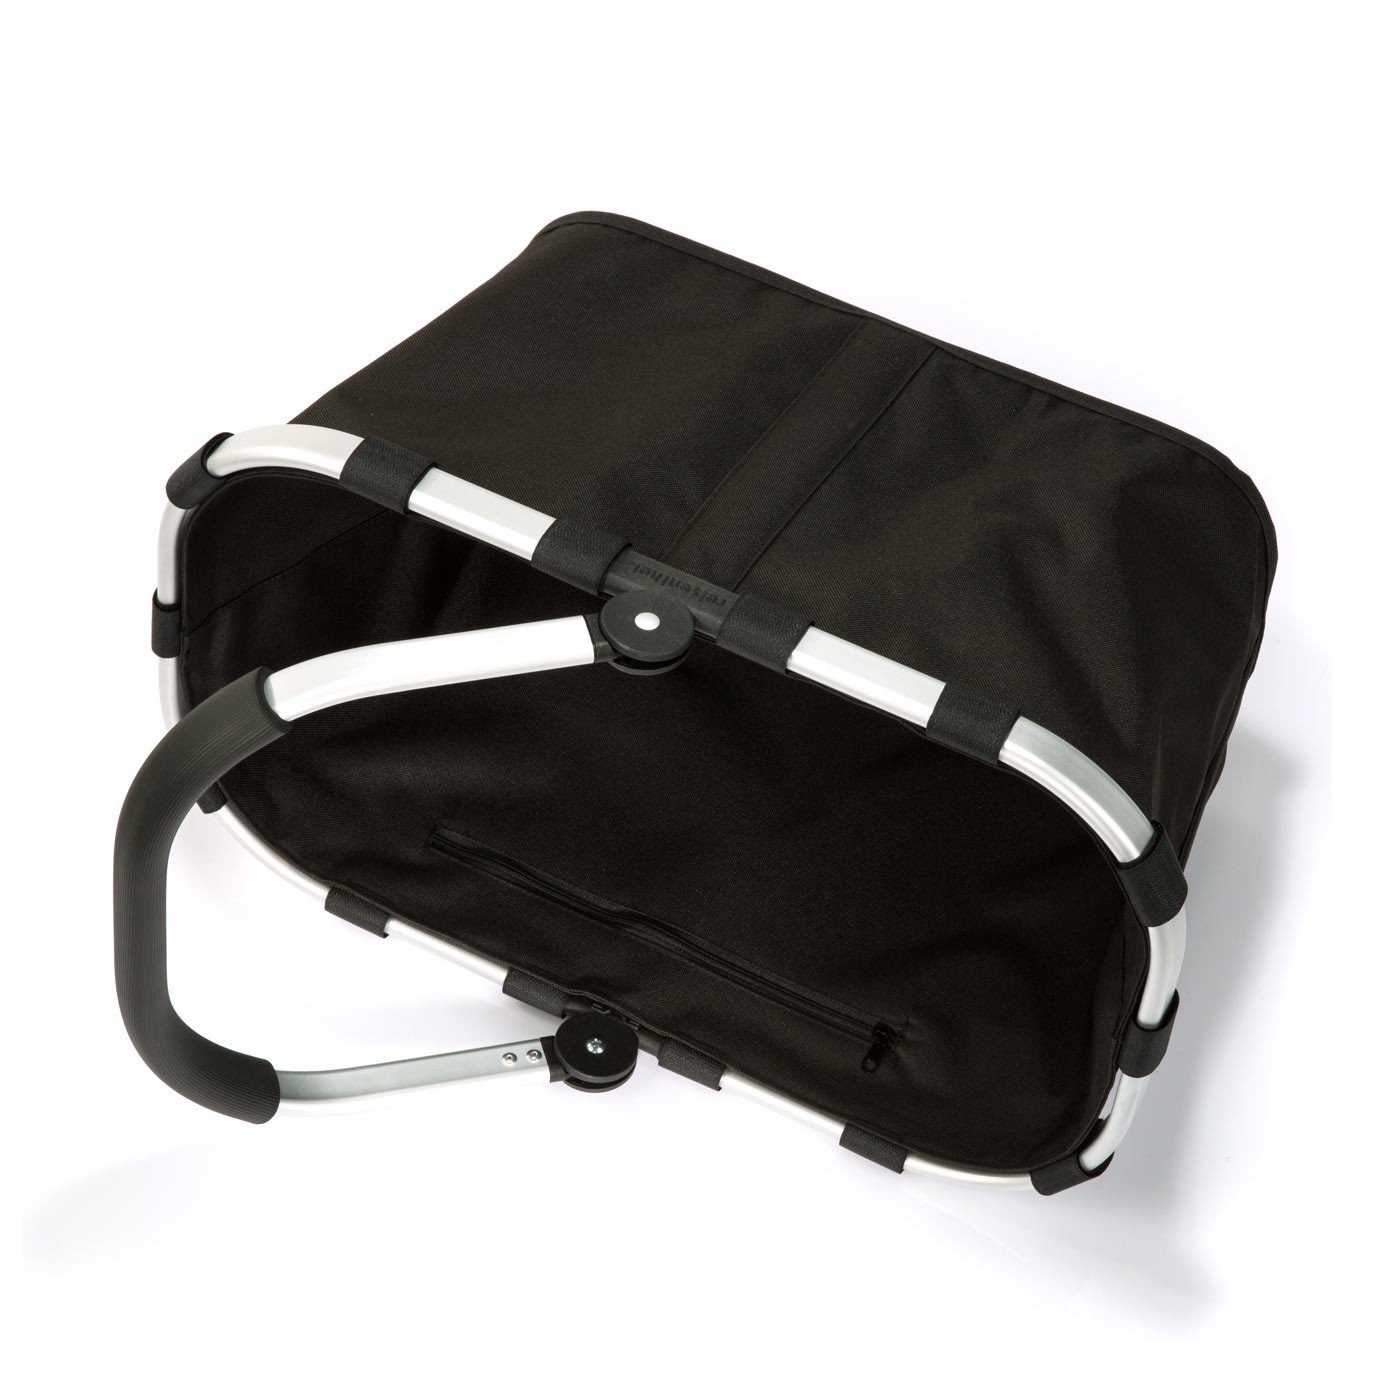 Reisenthel Carrybag black im Suhl Online Shop